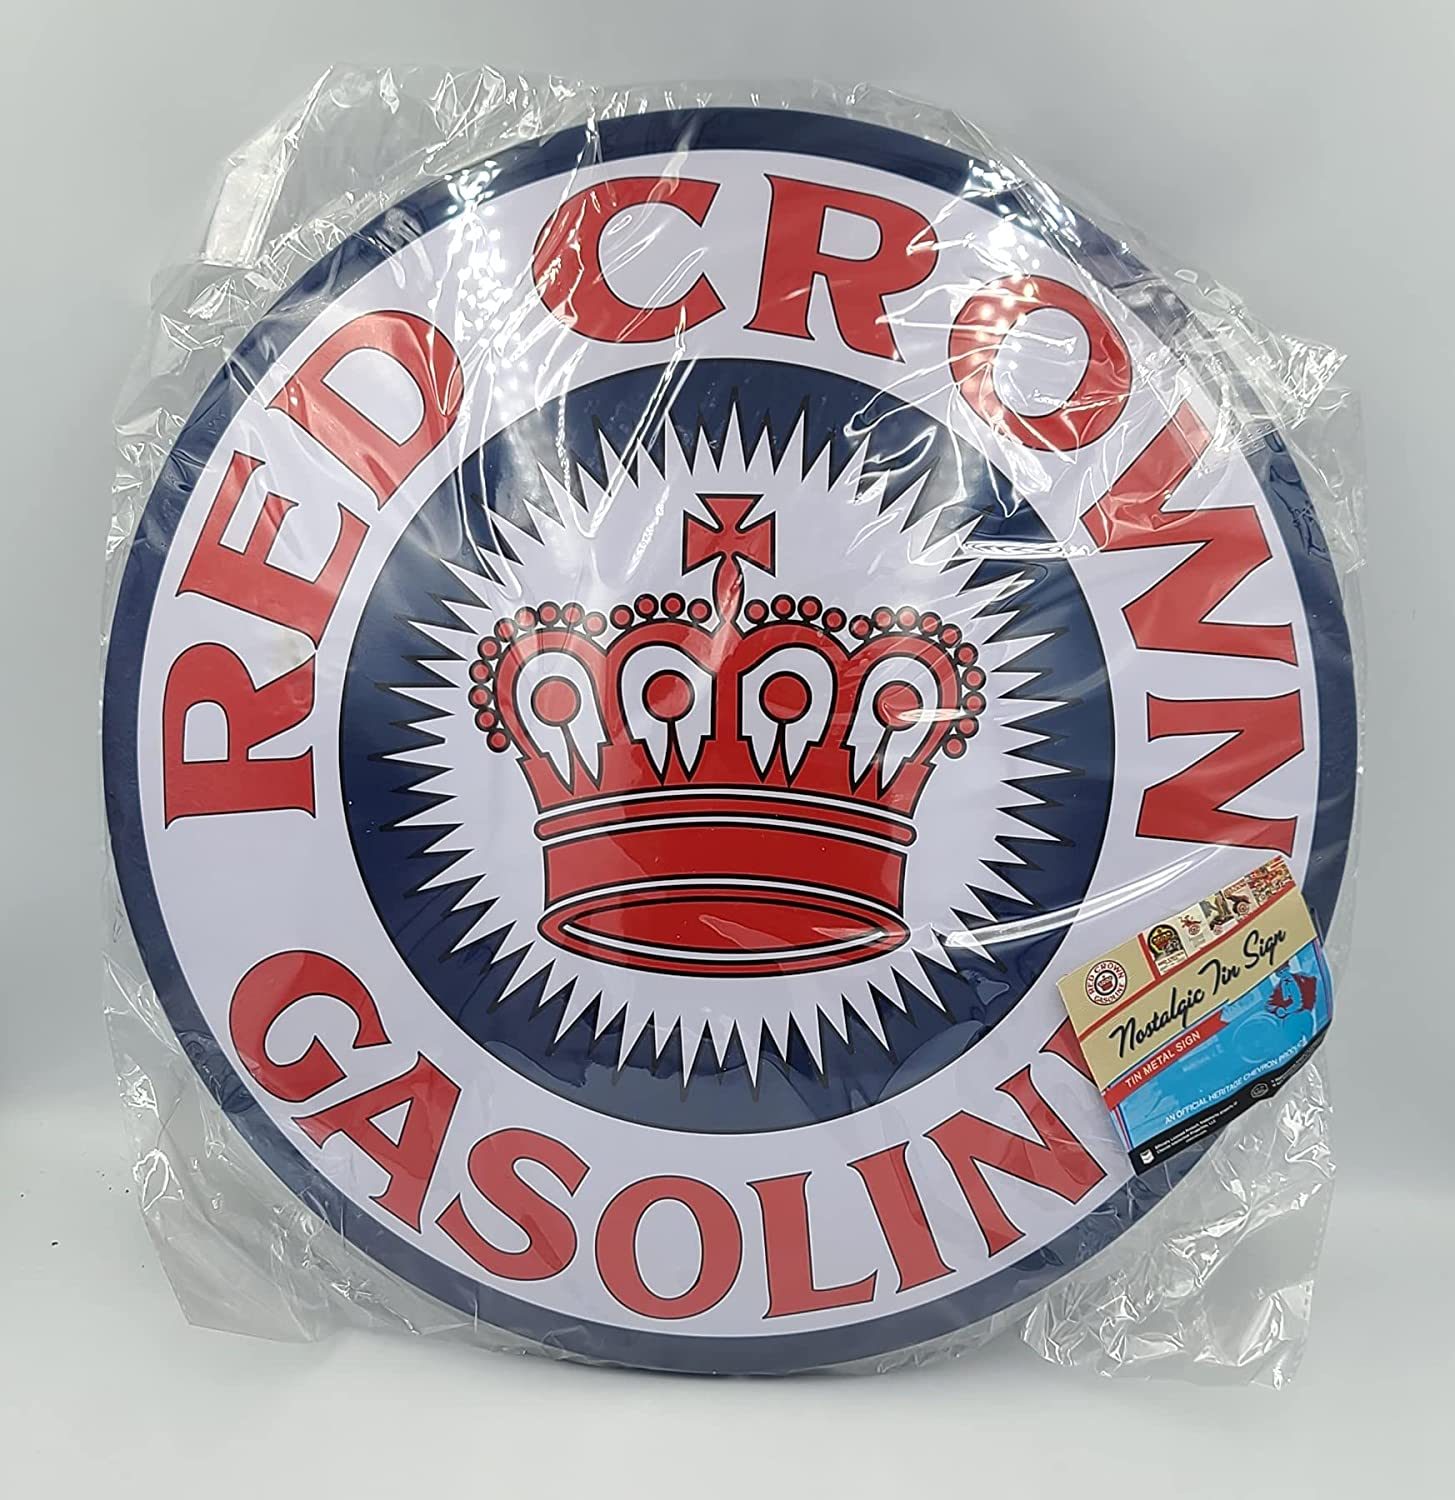 Ohio Trading Popular standard 16 Inch Metal Dome Offici - Crown Sign Gasoline Red Challenge the lowest price of Japan